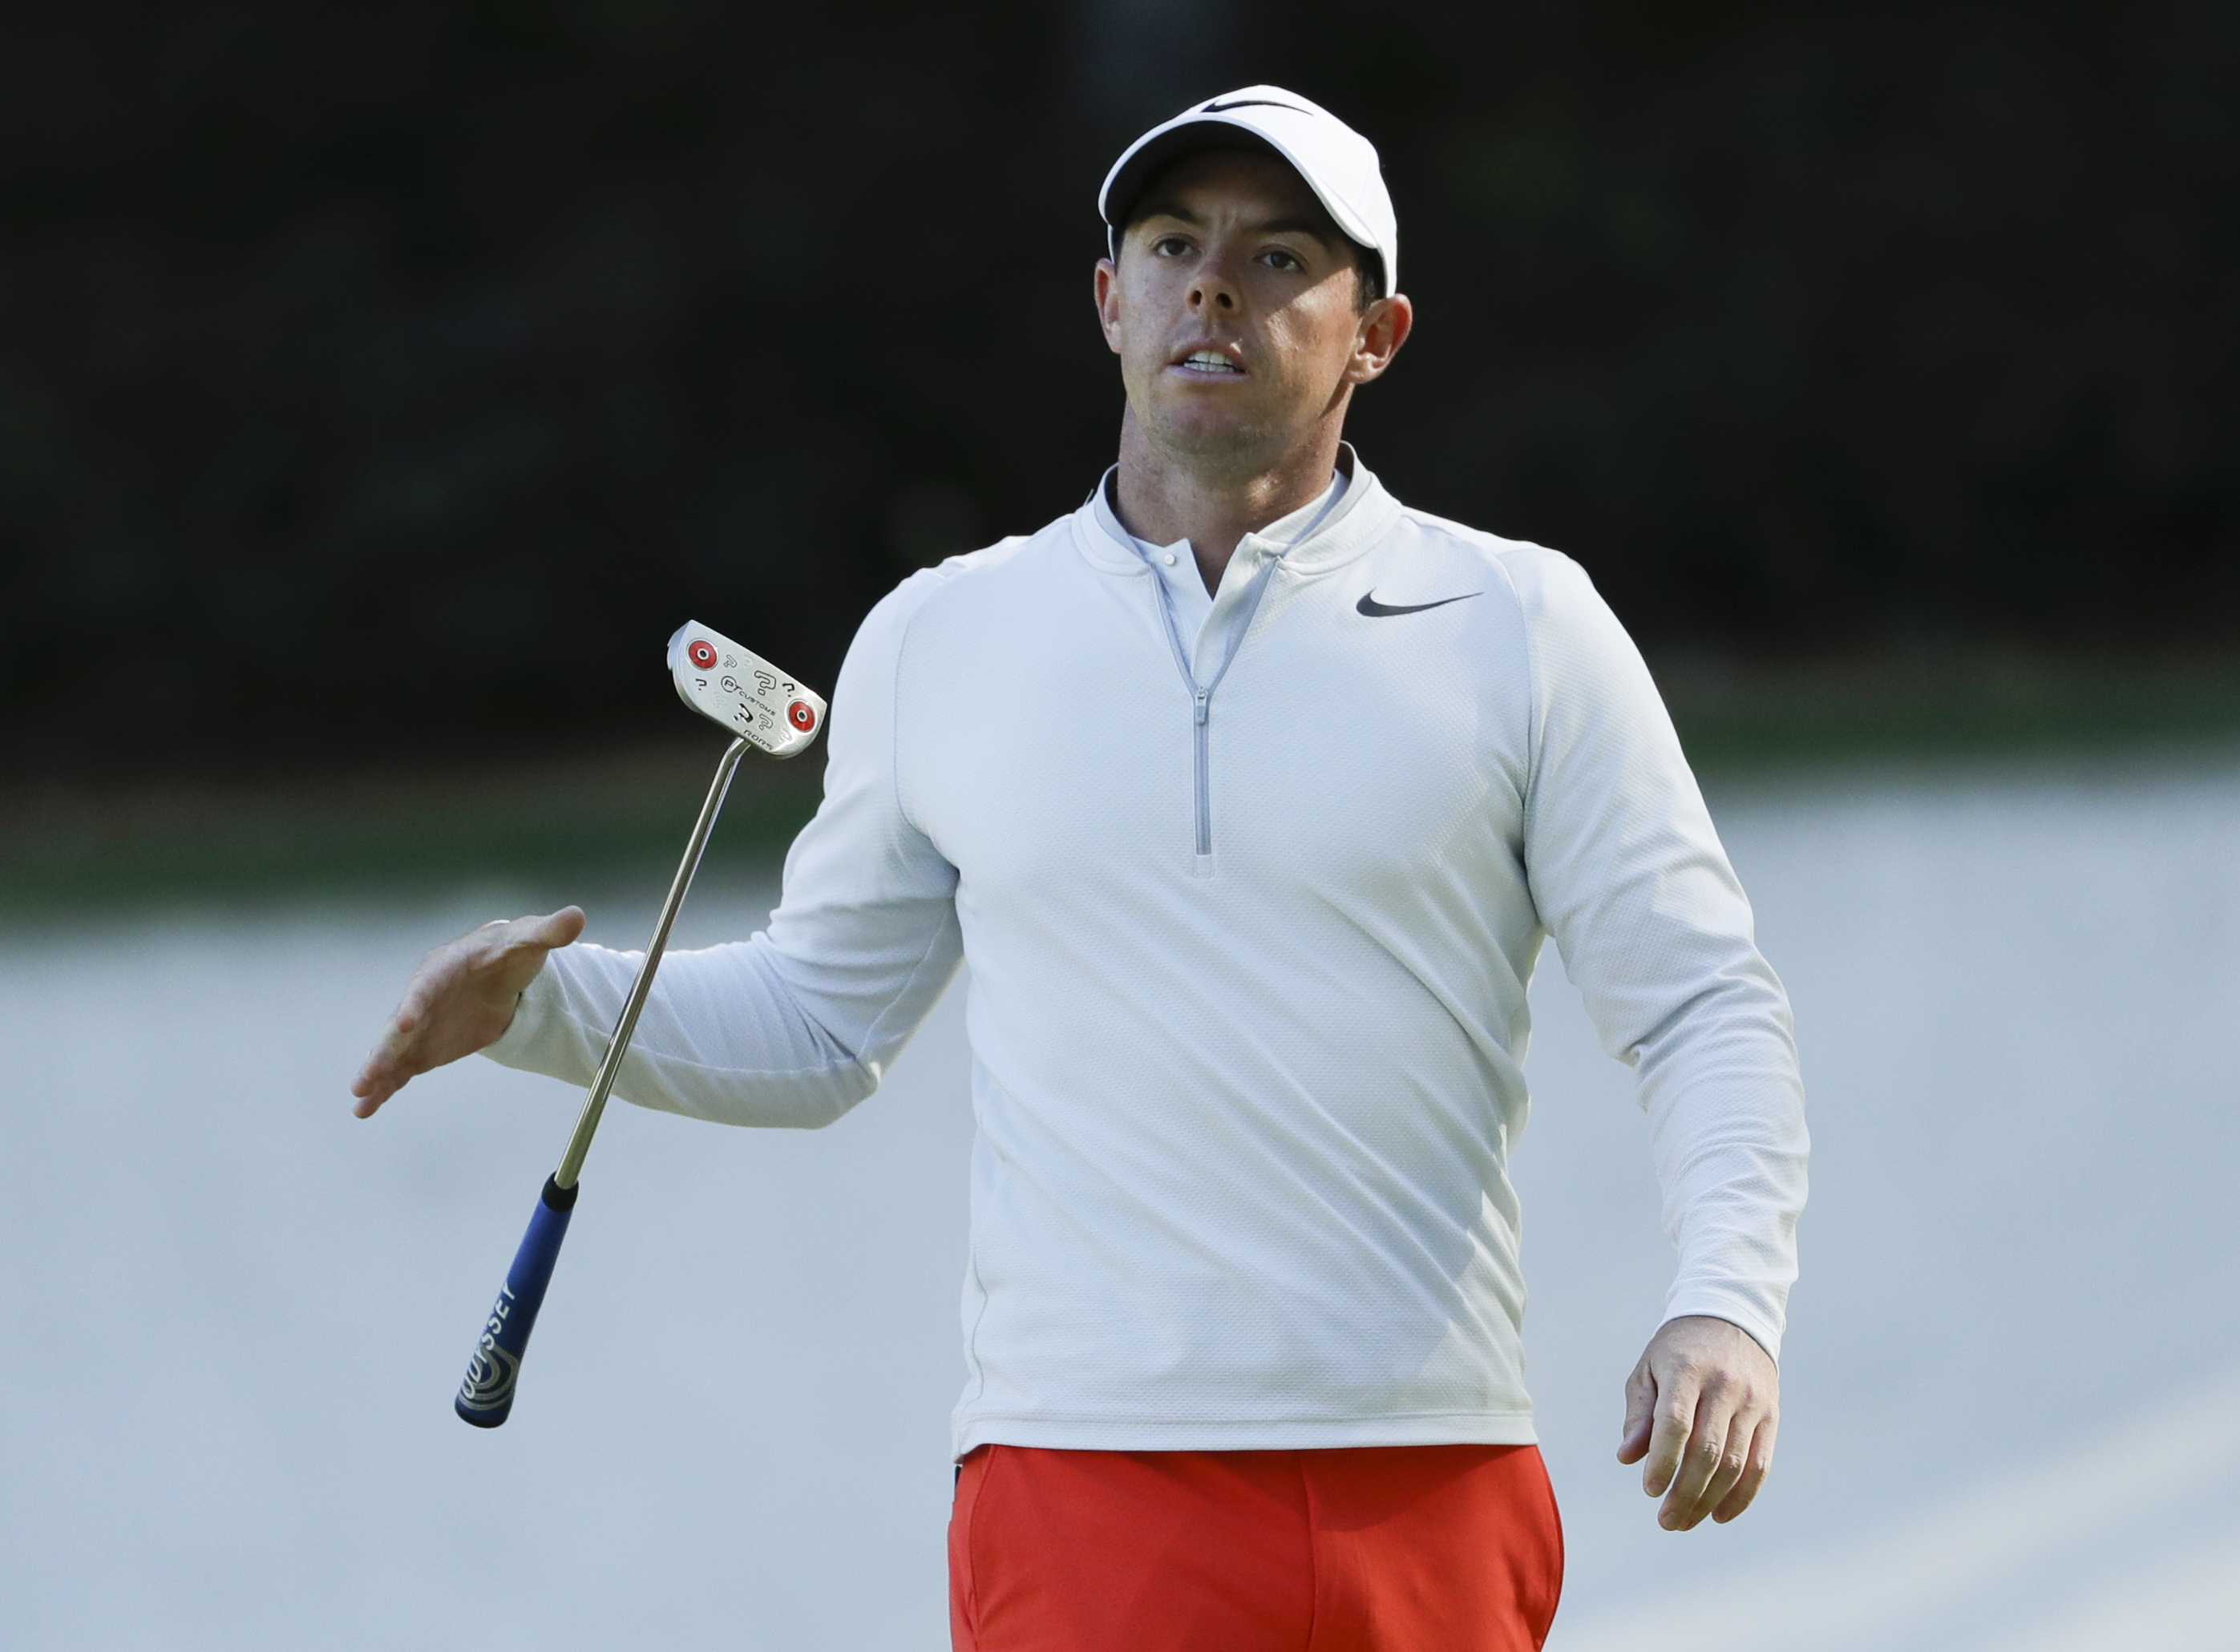 Rory McIlroy of Northern Ireland, drops his putter on the 13th hole during the third round of the Masters golf tournament Saturday, April 8, 2017, in Augusta, Ga. (AP Photo/Matt Slocum)